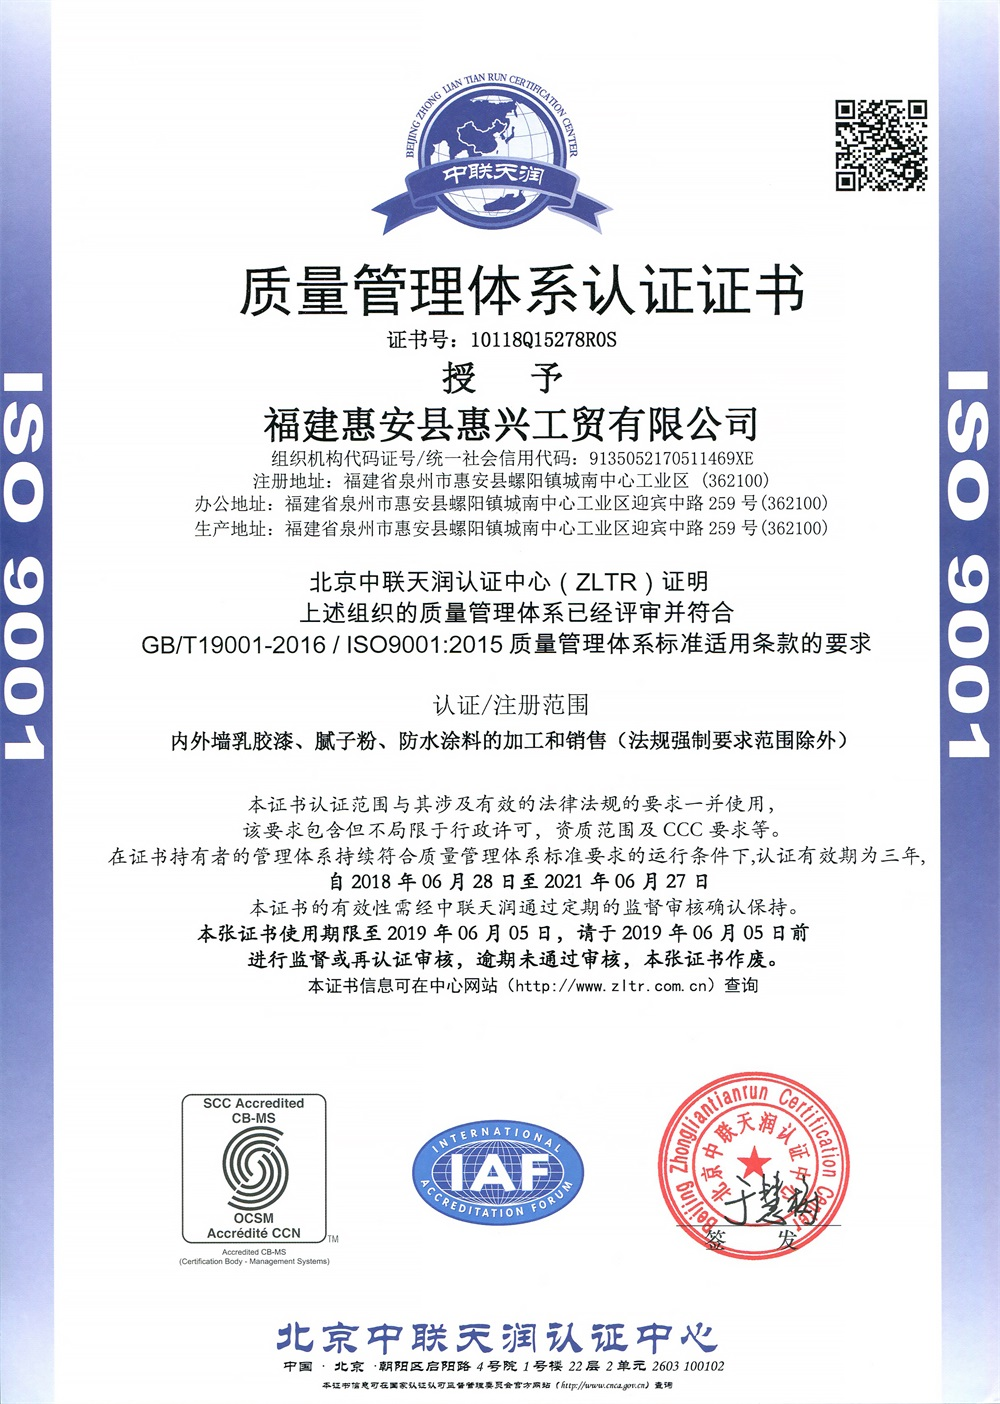 2018 Quality Management System Certification (Chinese)